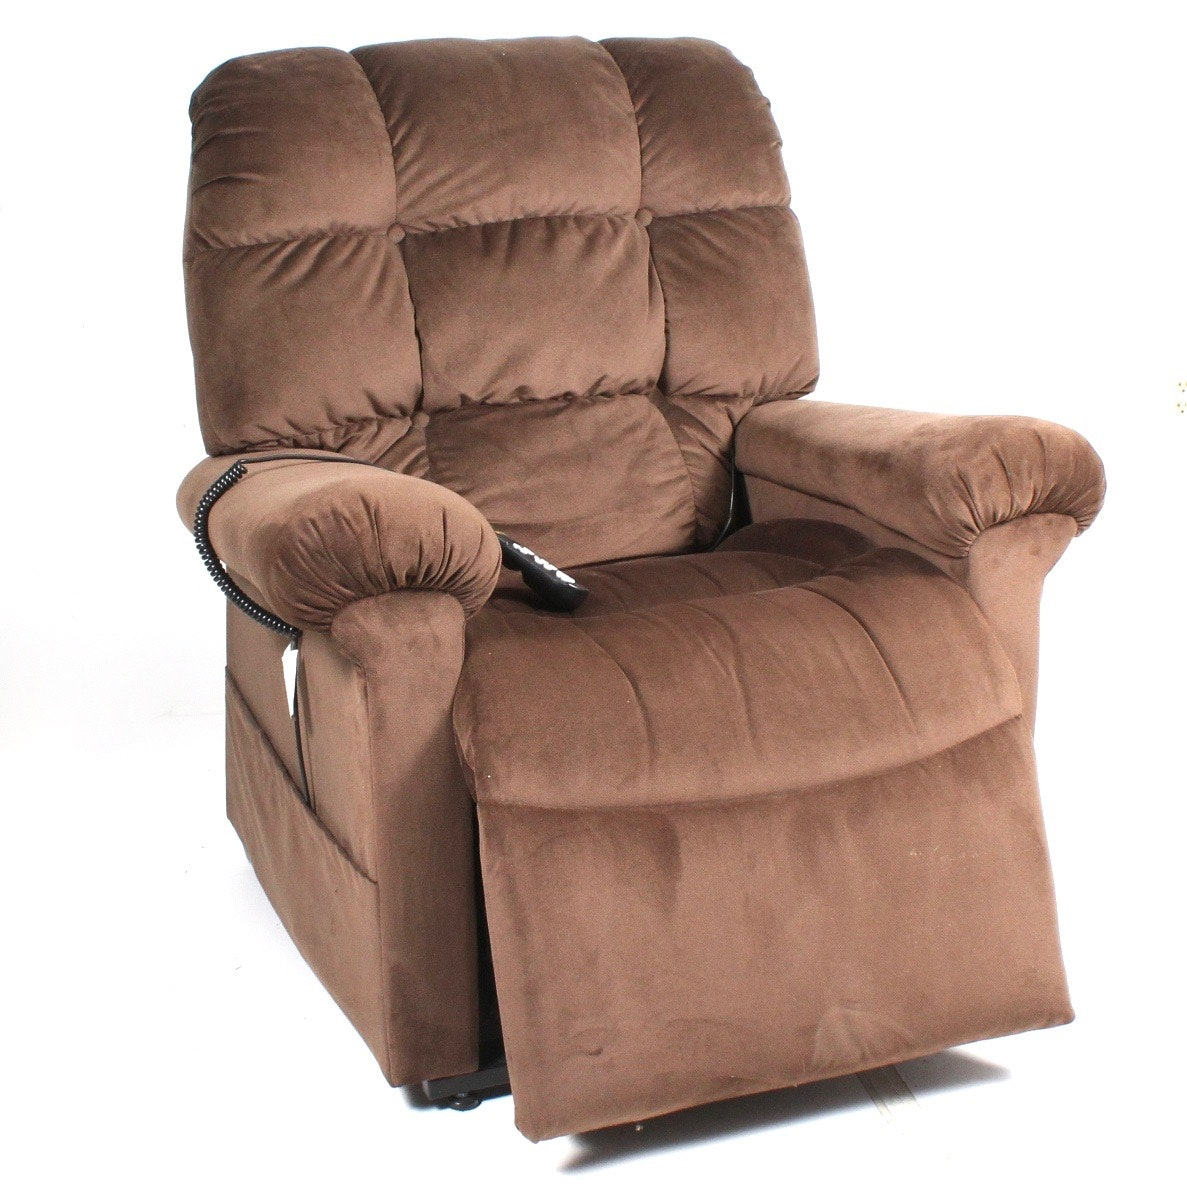 Golden Technologies Lift Recliner Chair